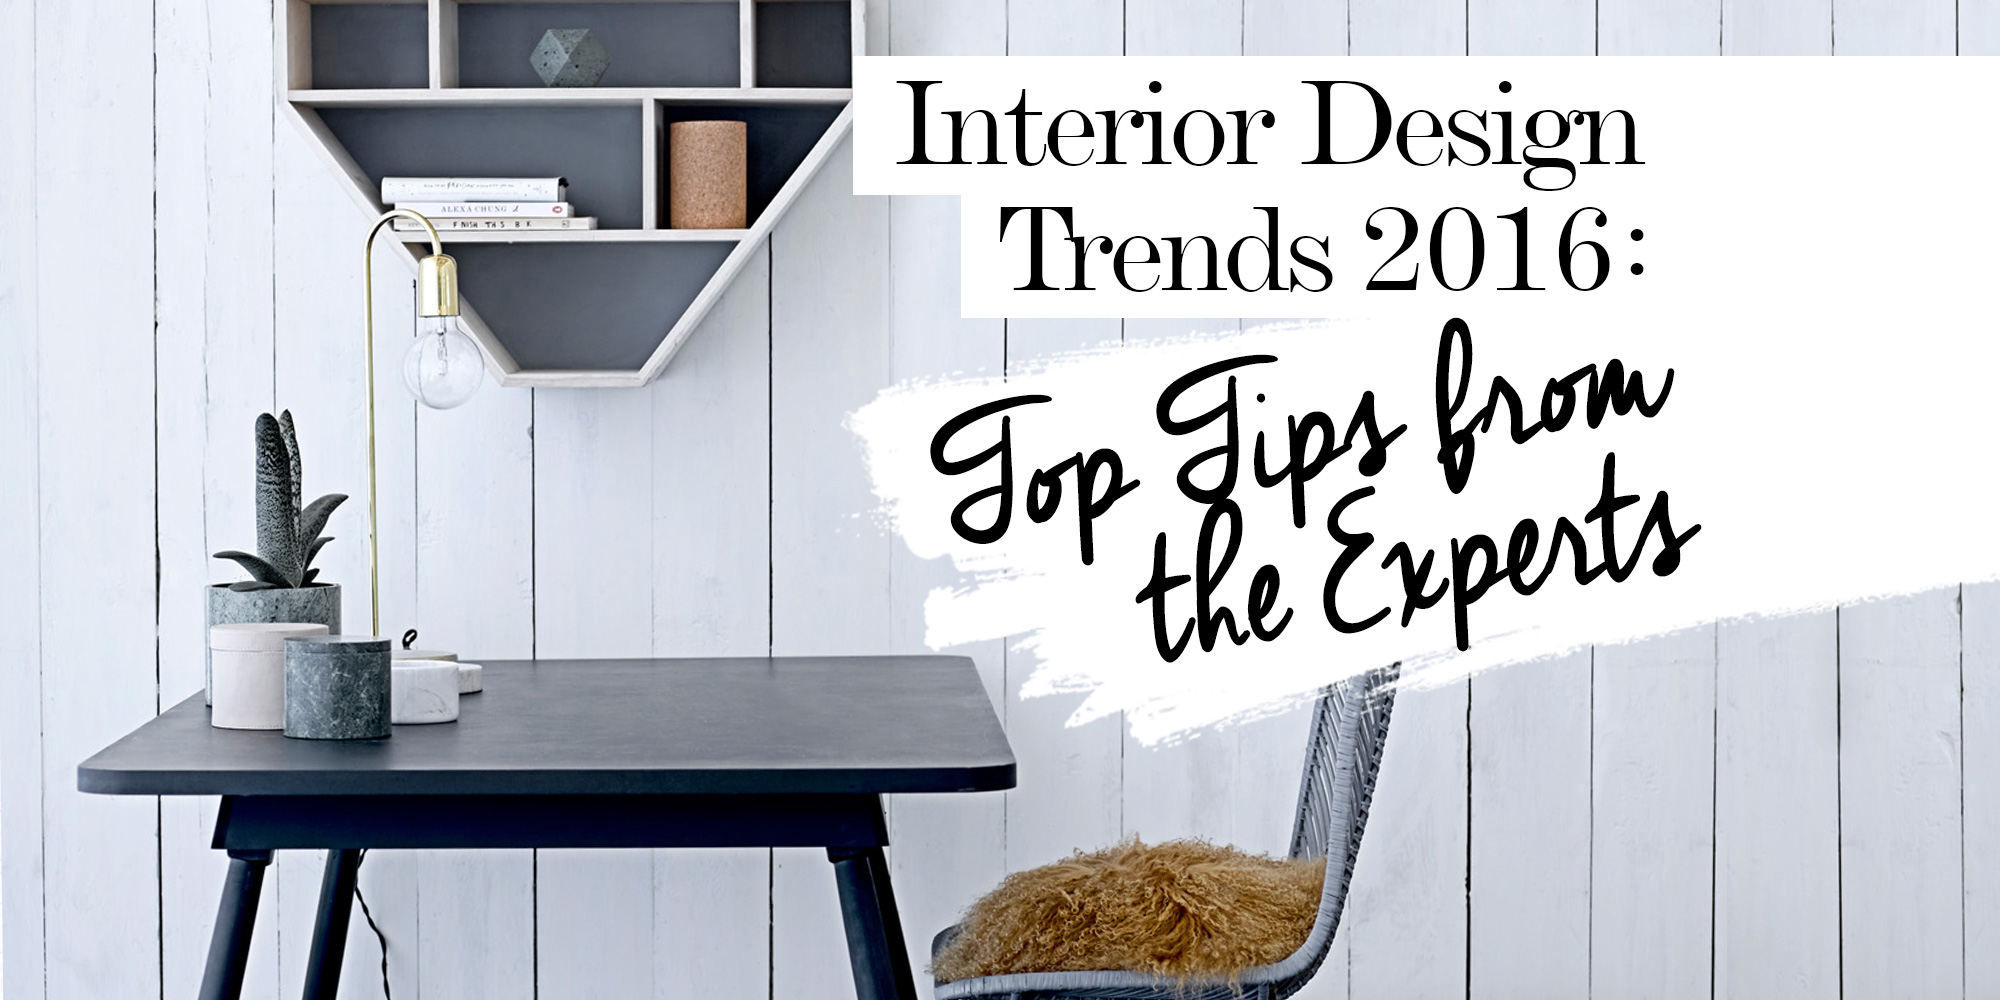 2016 interior design trends top tips from the experts